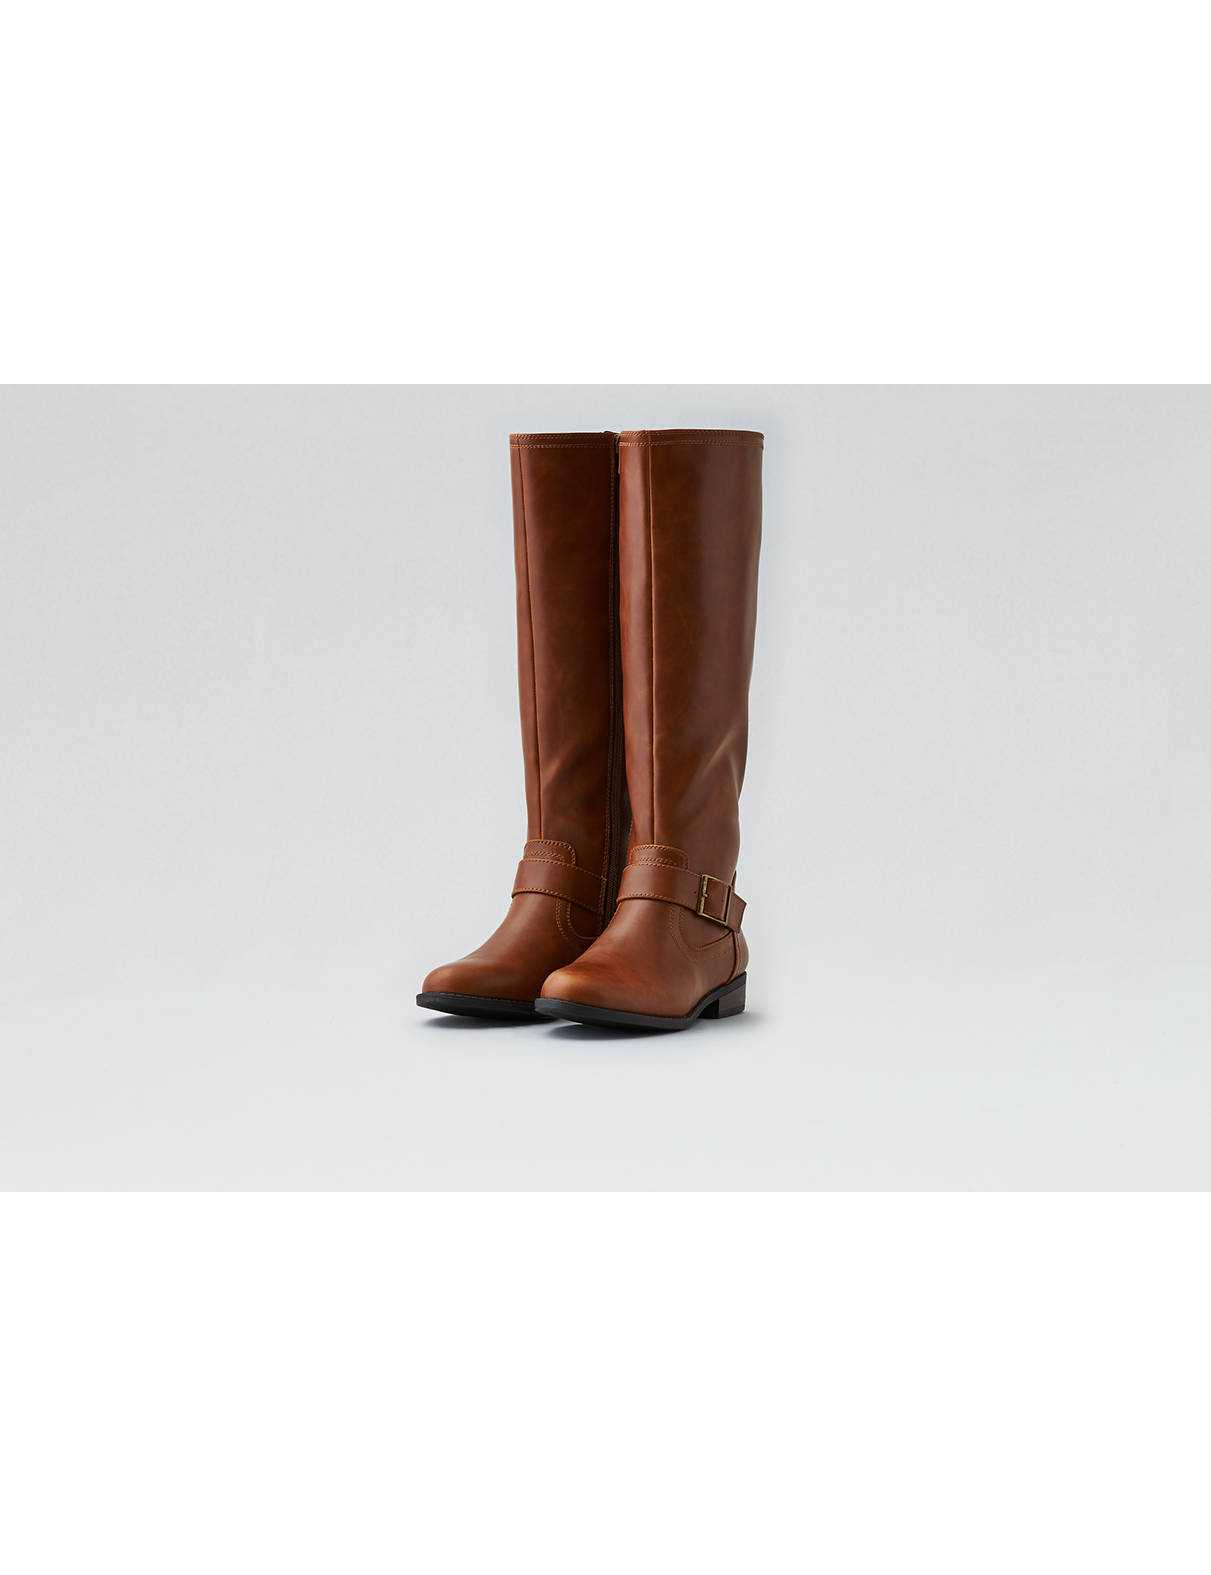 Women's Clearance - Boots | American Eagle Outfitters